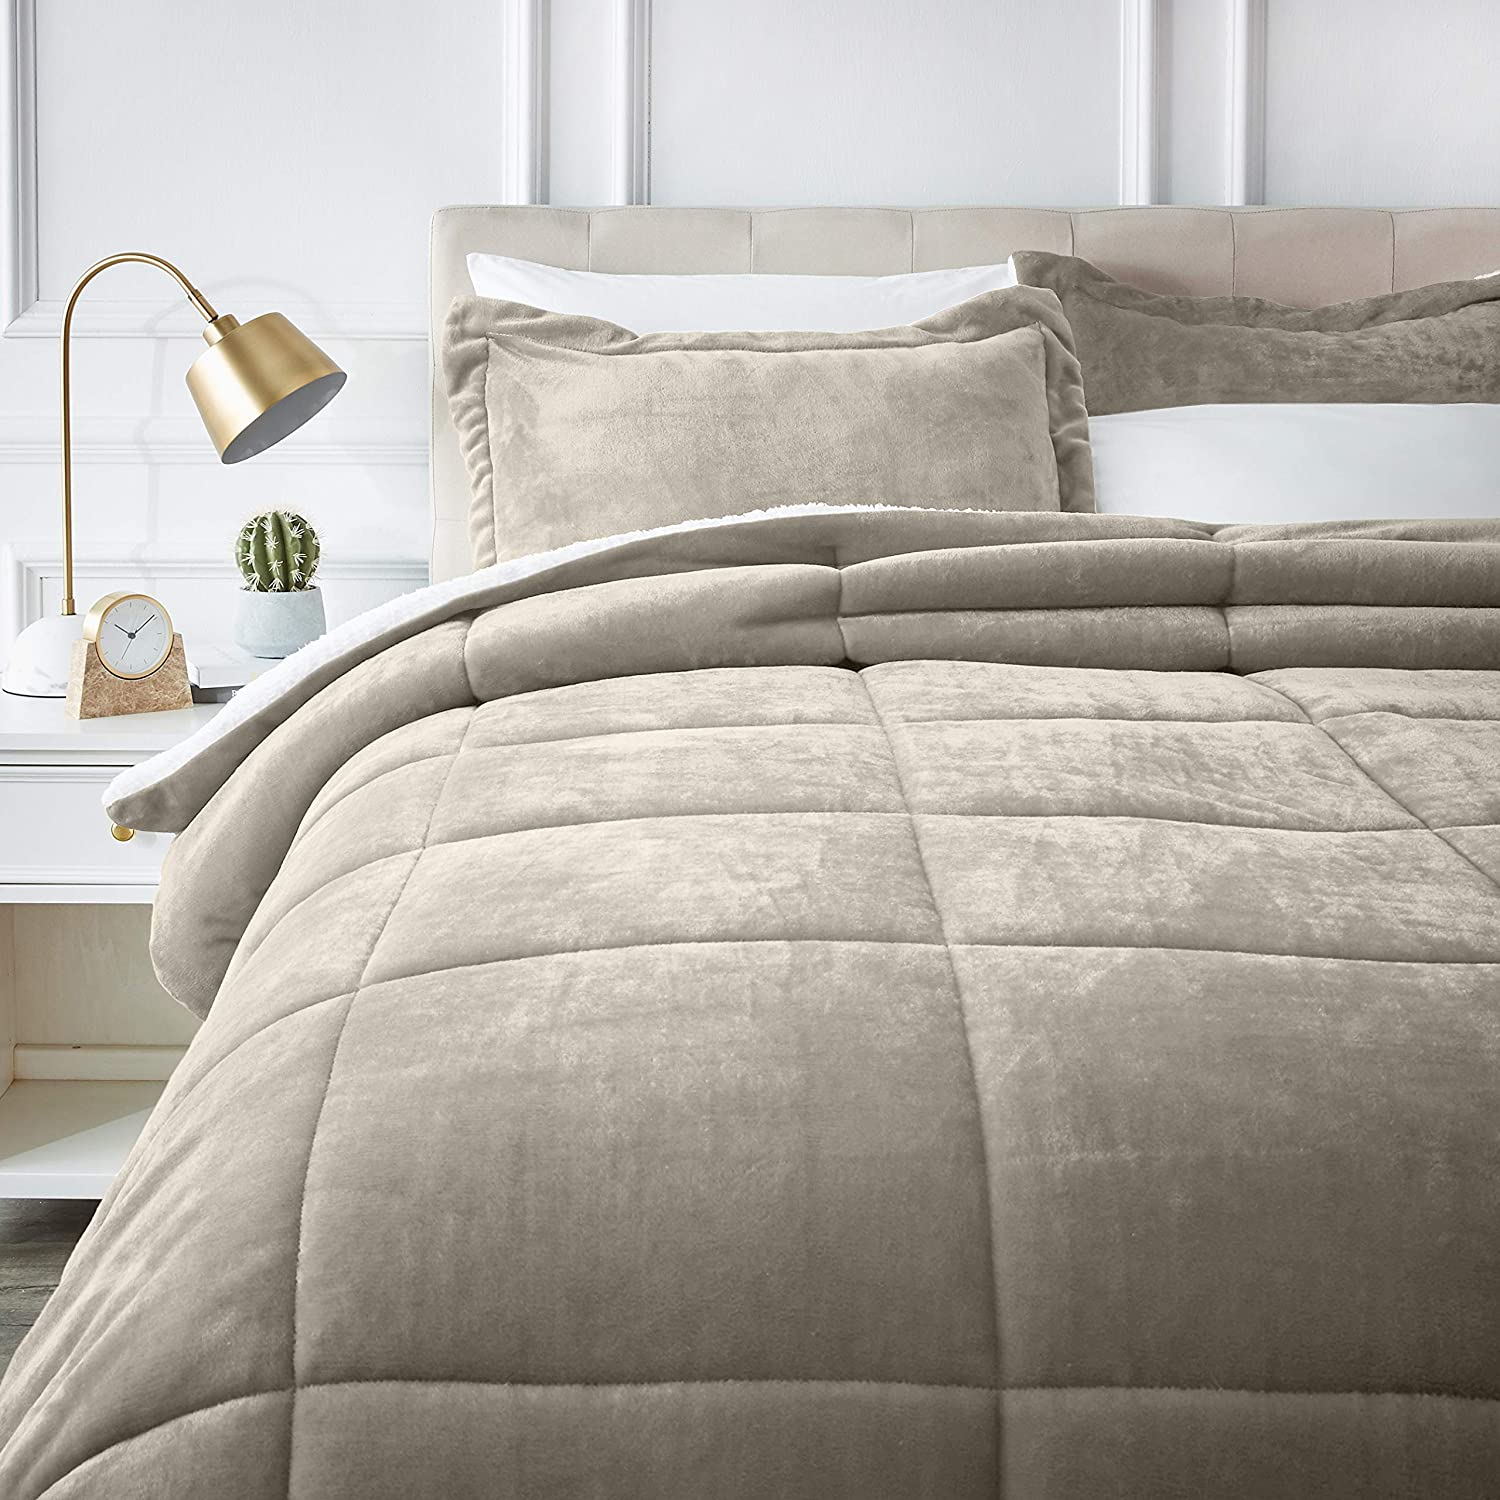 AmazonBasics Micromink Sherpa Comforter Set - Ultra-Soft, Fray-Resistant -King, Taupe